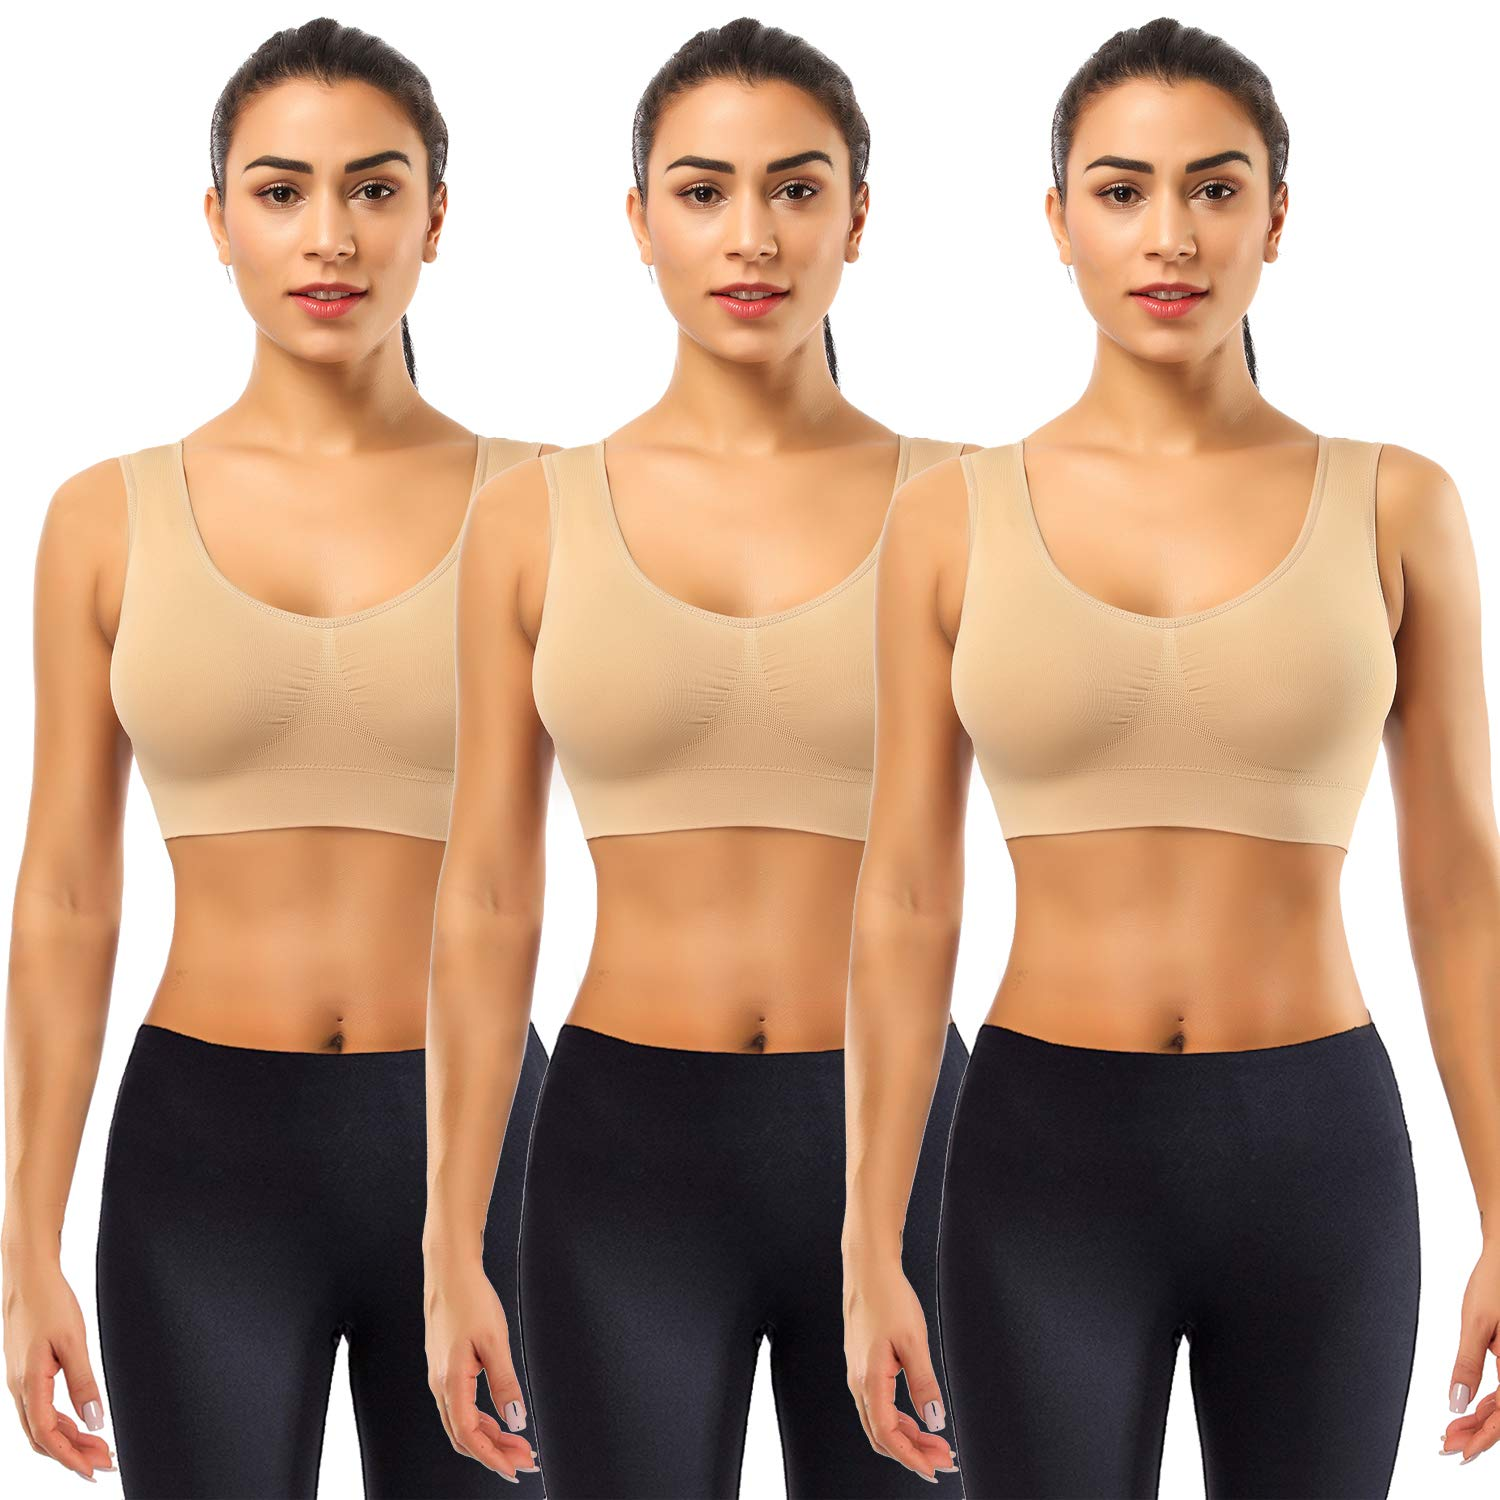 BESTENA Sports Bras for Women, 3 Pack Seamless Comfortable Yoga Bra with Removable Pads(Nude,Small)